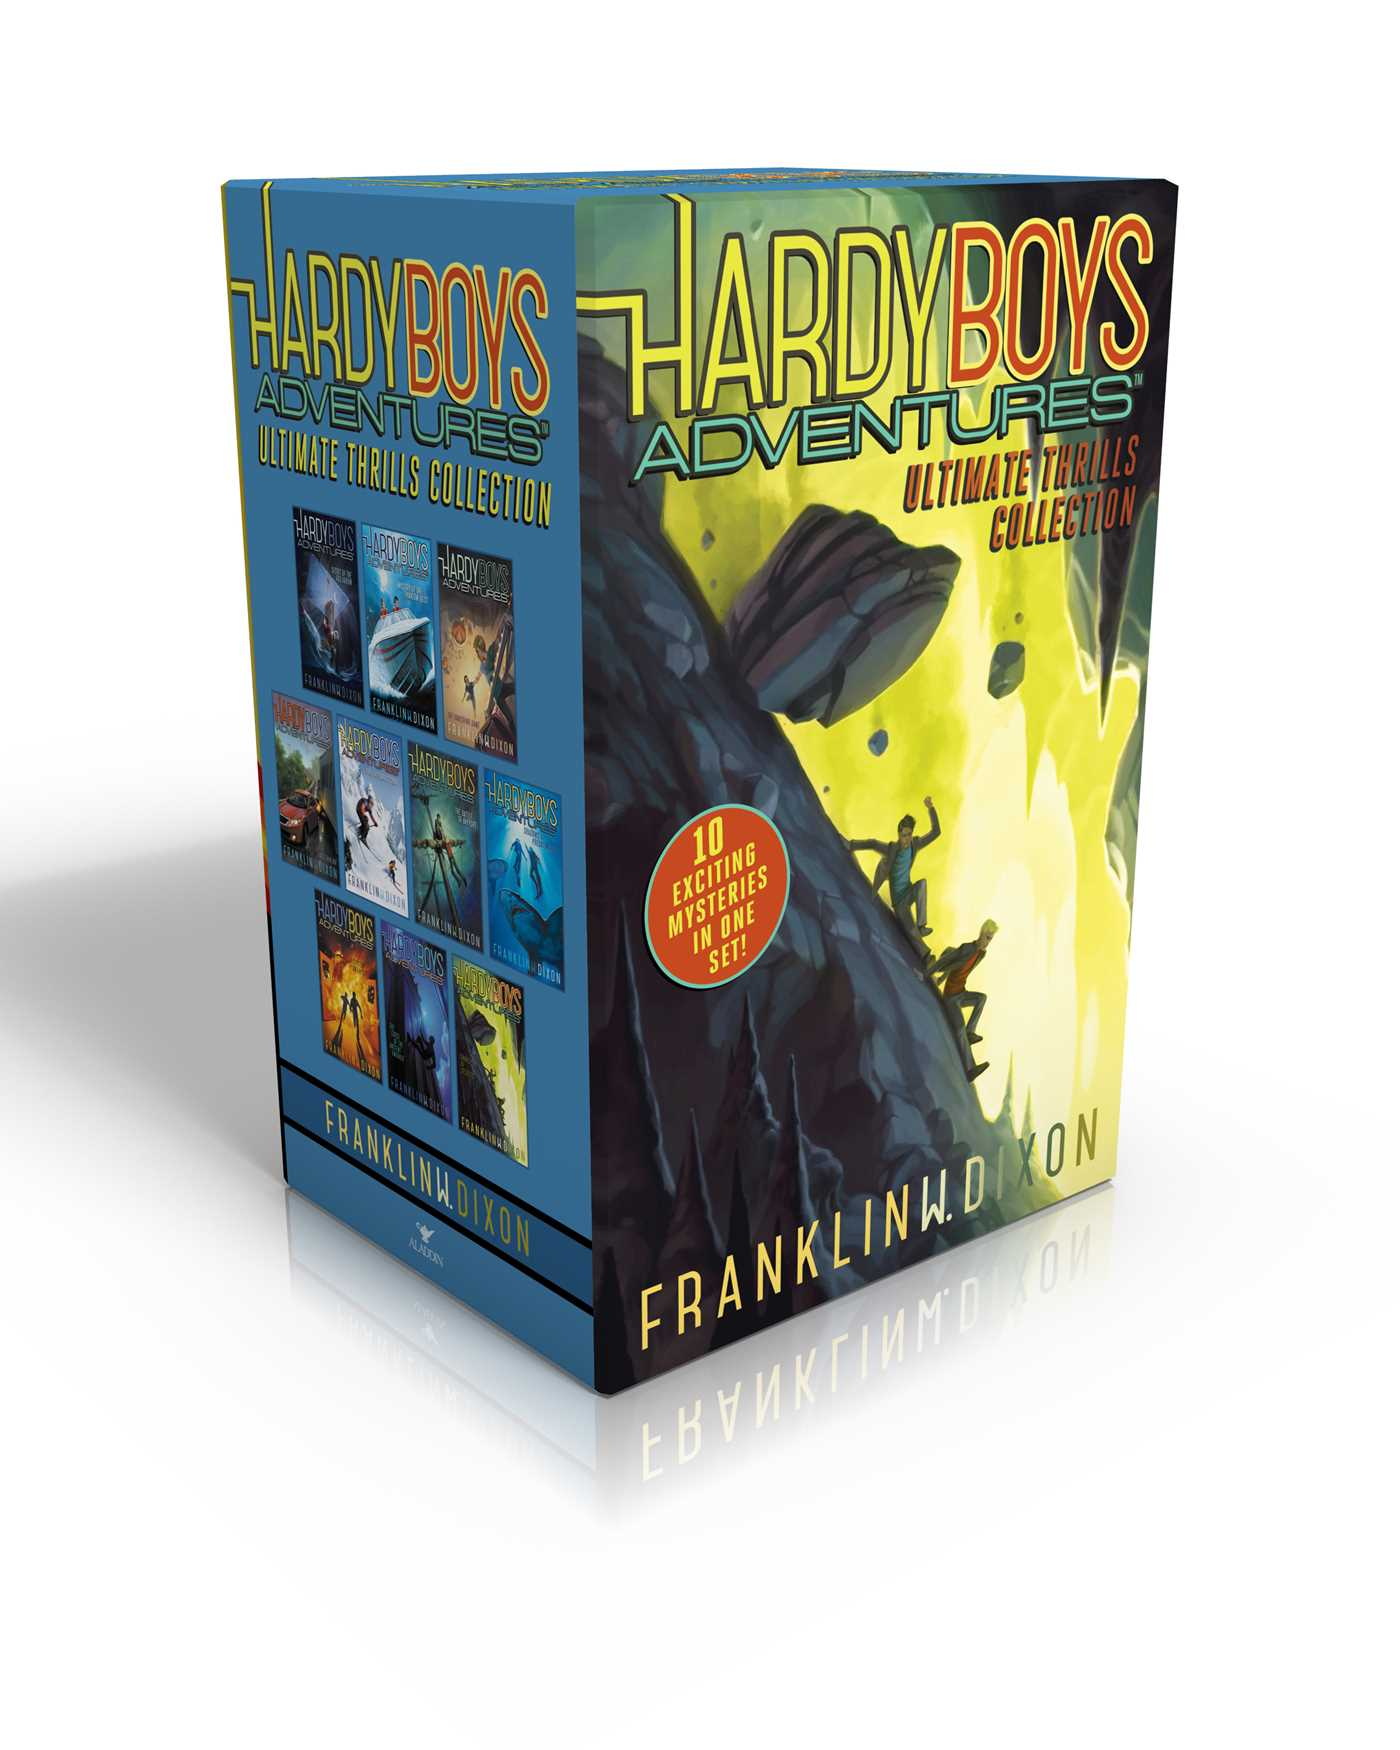 Hardy boys adventures ultimate thrills collection 9781481469265 hr